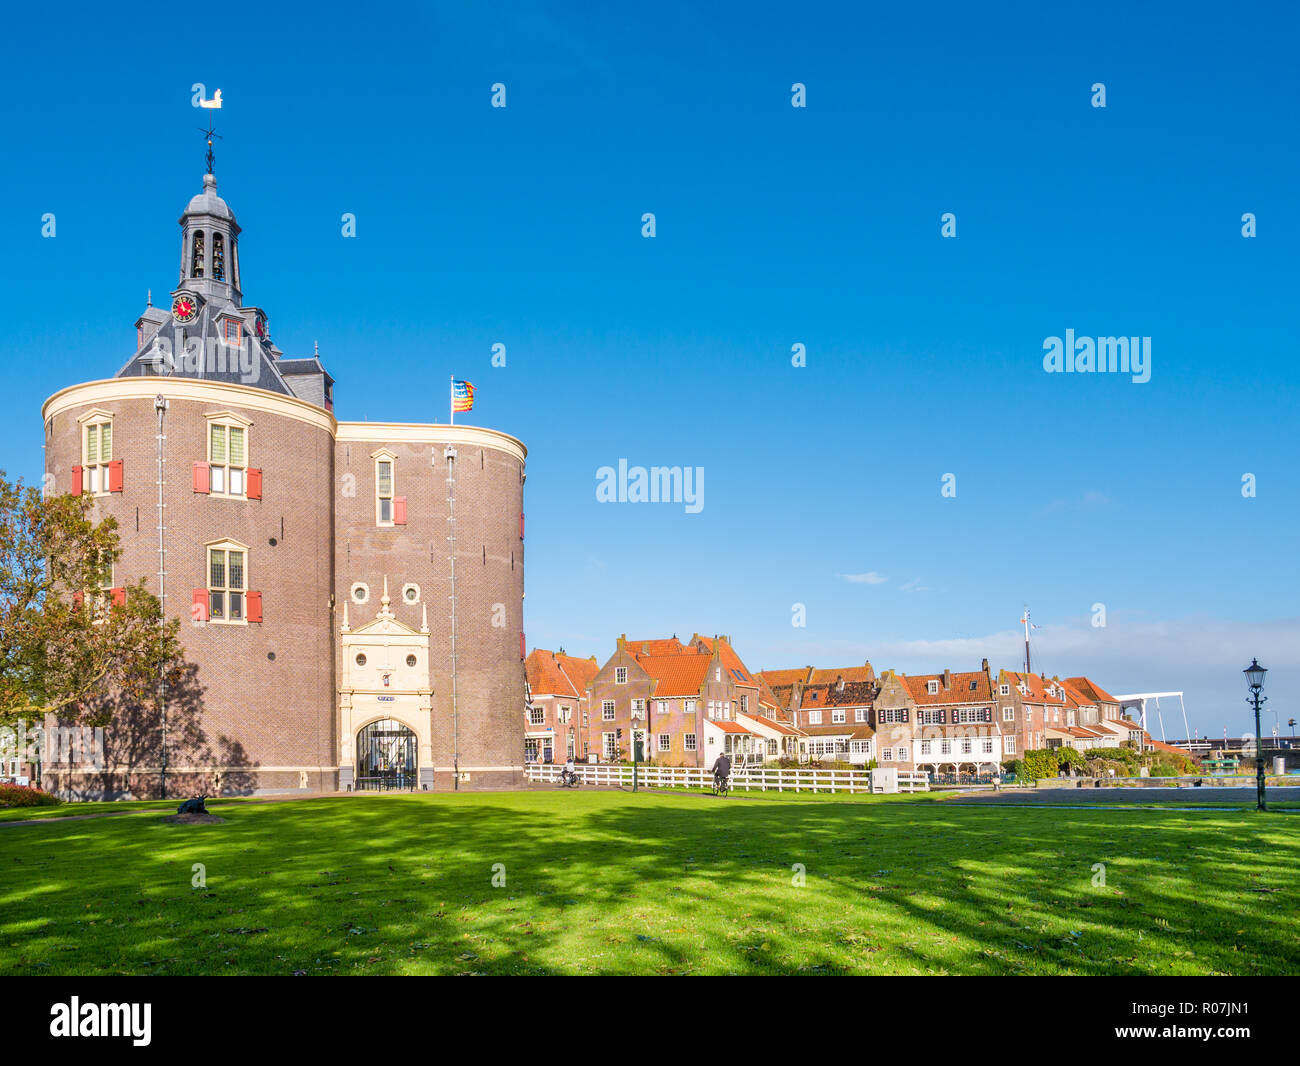 Drommedaris south city gate in harbour of Enkhuizen, North Holland, Netherlands - Stock Image